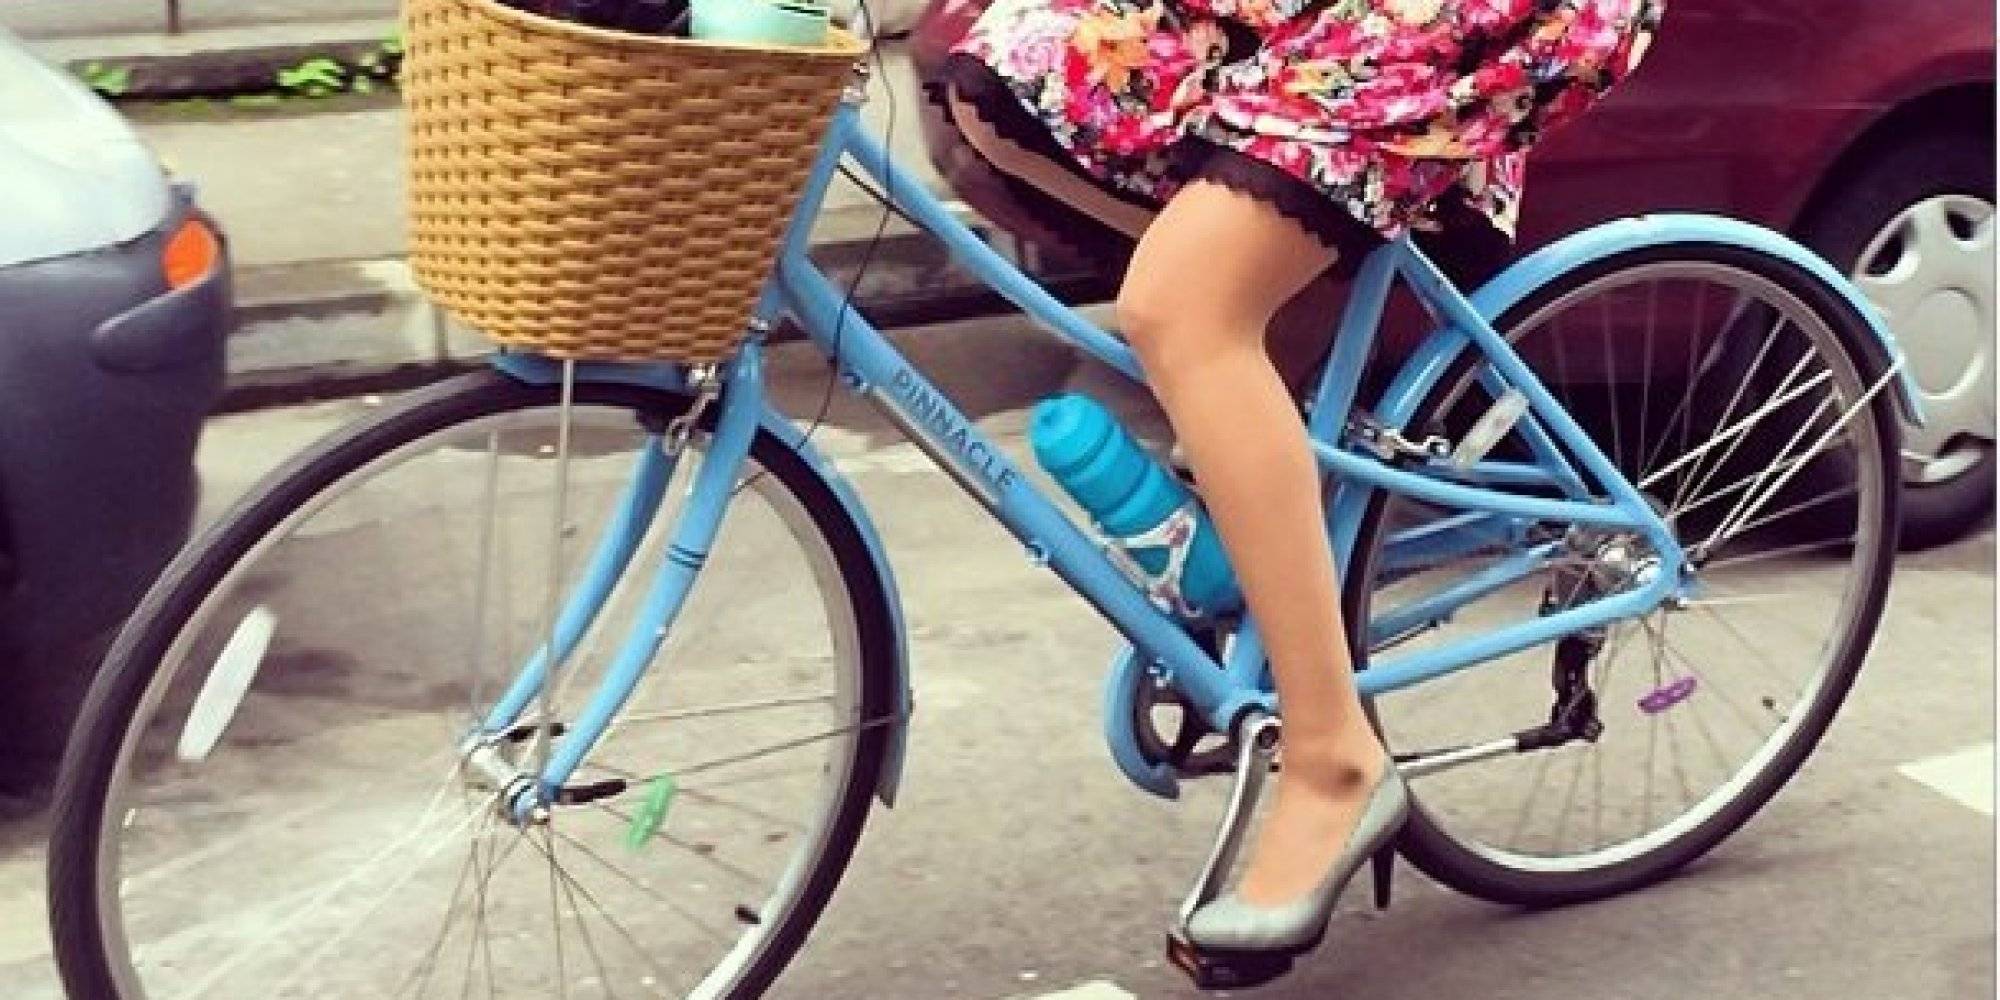 How To Look Like A Lady While Riding A Bike | HuffPost